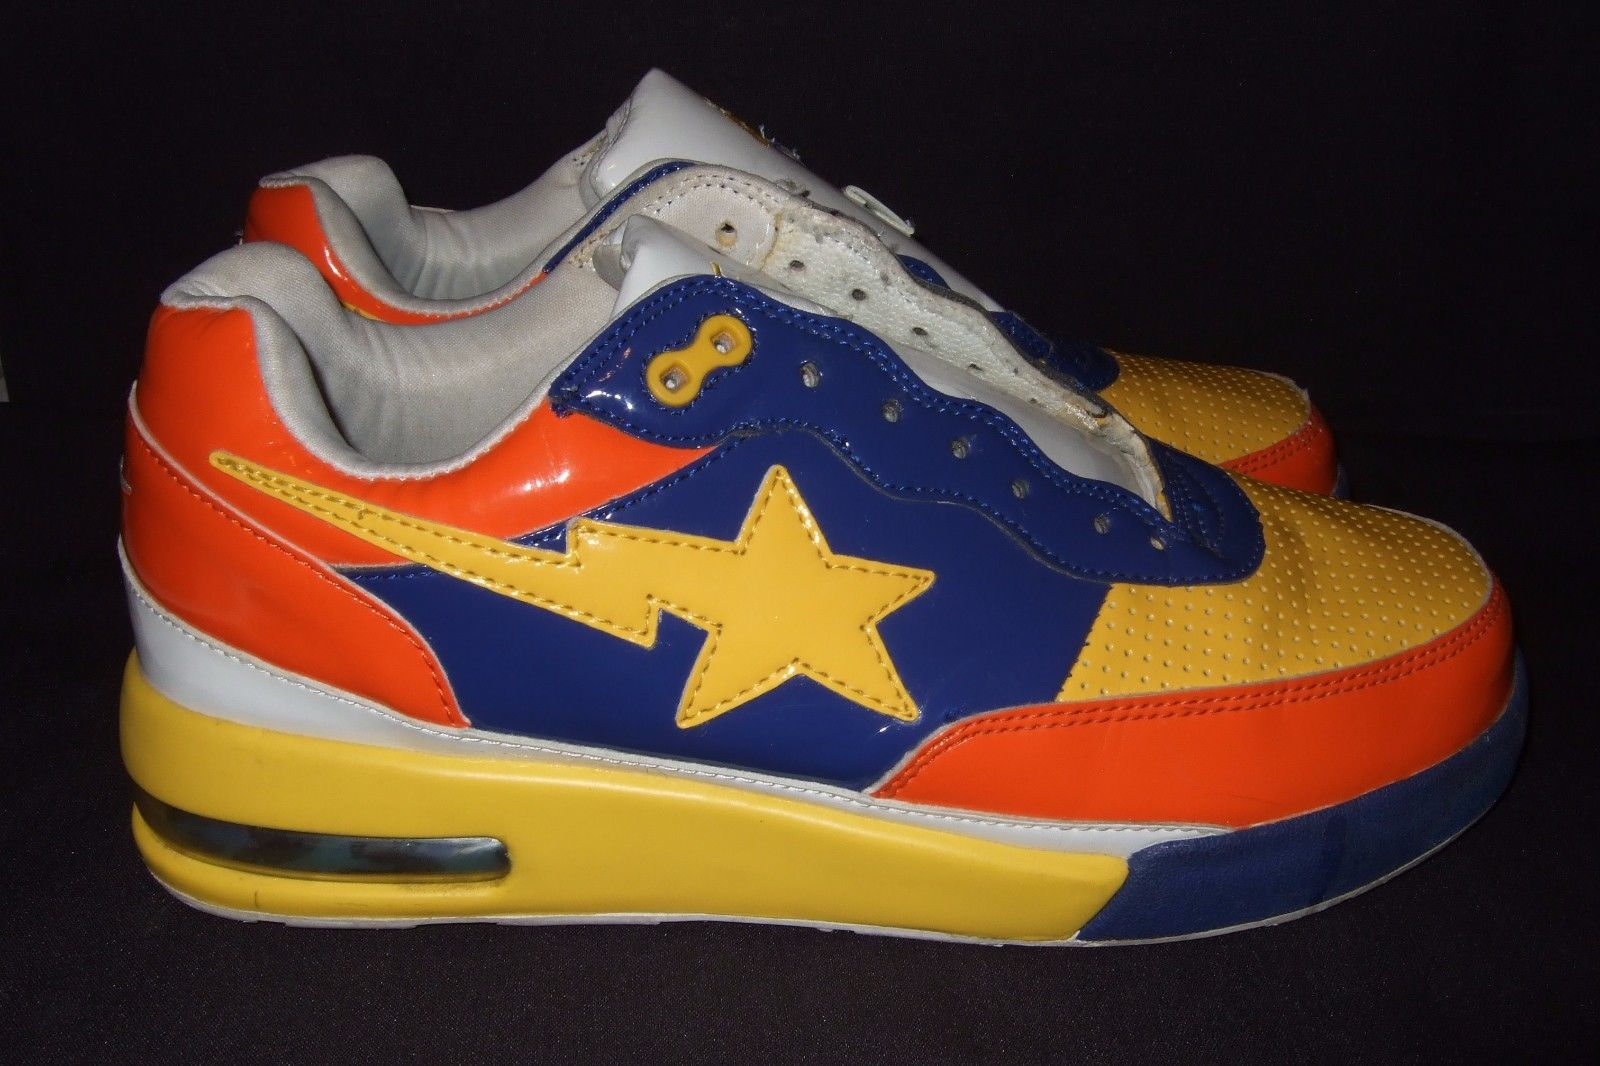 Bapesta | Bathing Apes Shoes for Sale | Bapesta